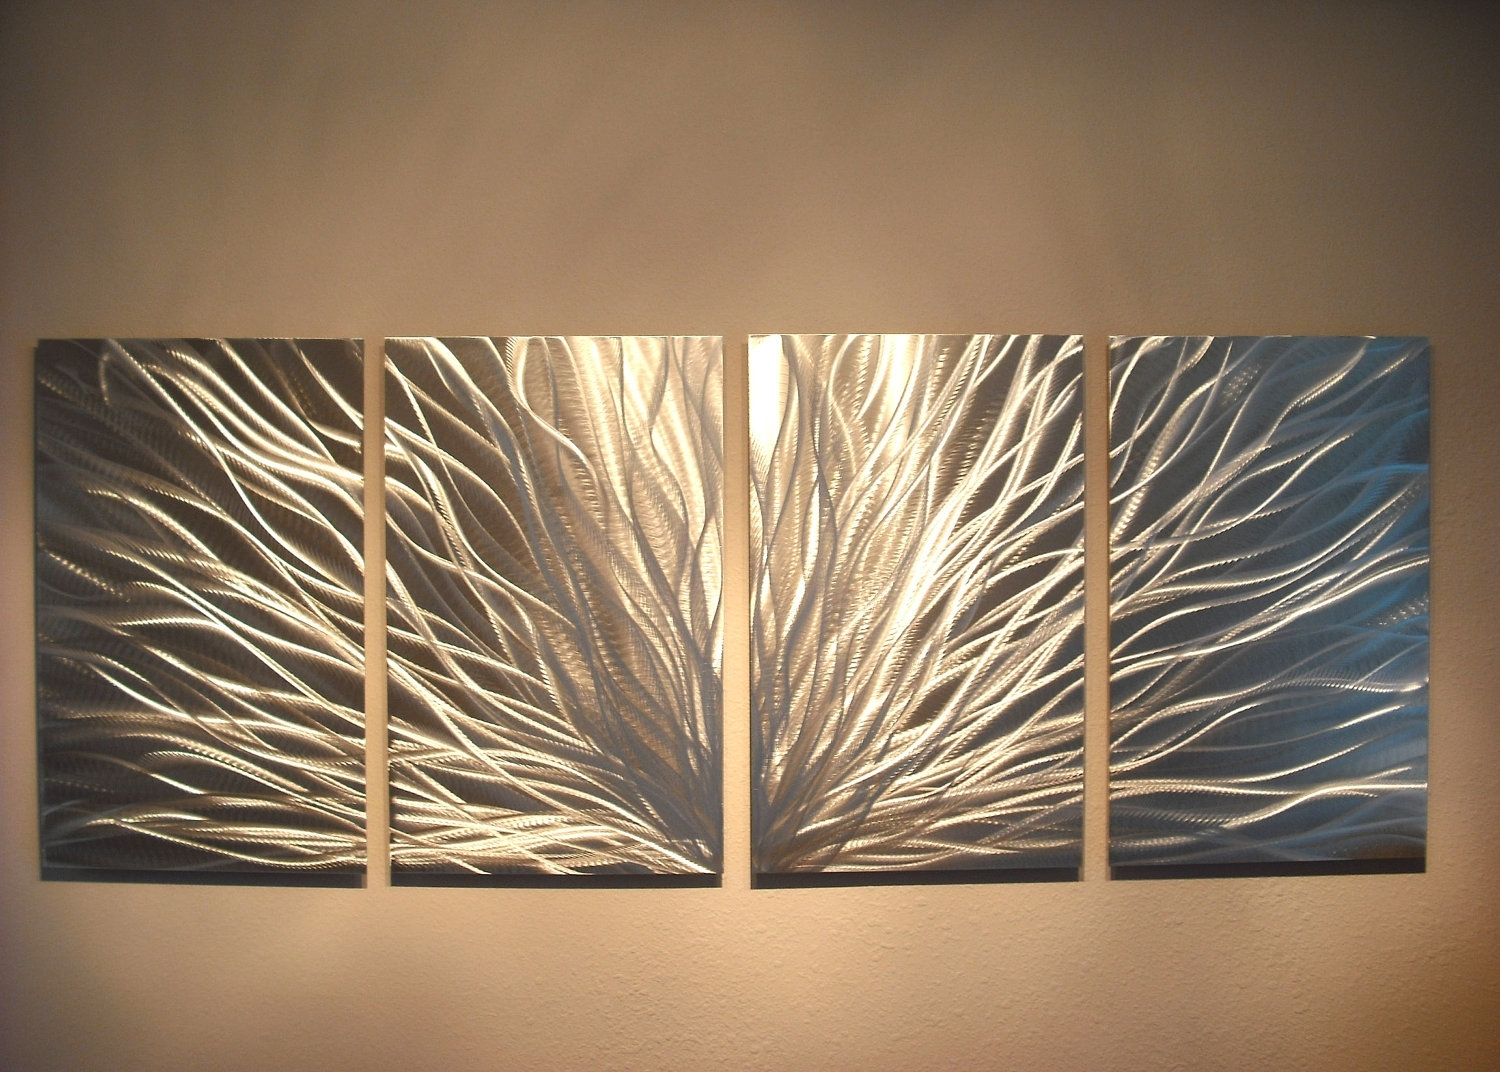 Radiance – Abstract Metal Wall Art Contemporary Modern Decor With Latest Abstract Iron Wall Art (Gallery 7 of 20)